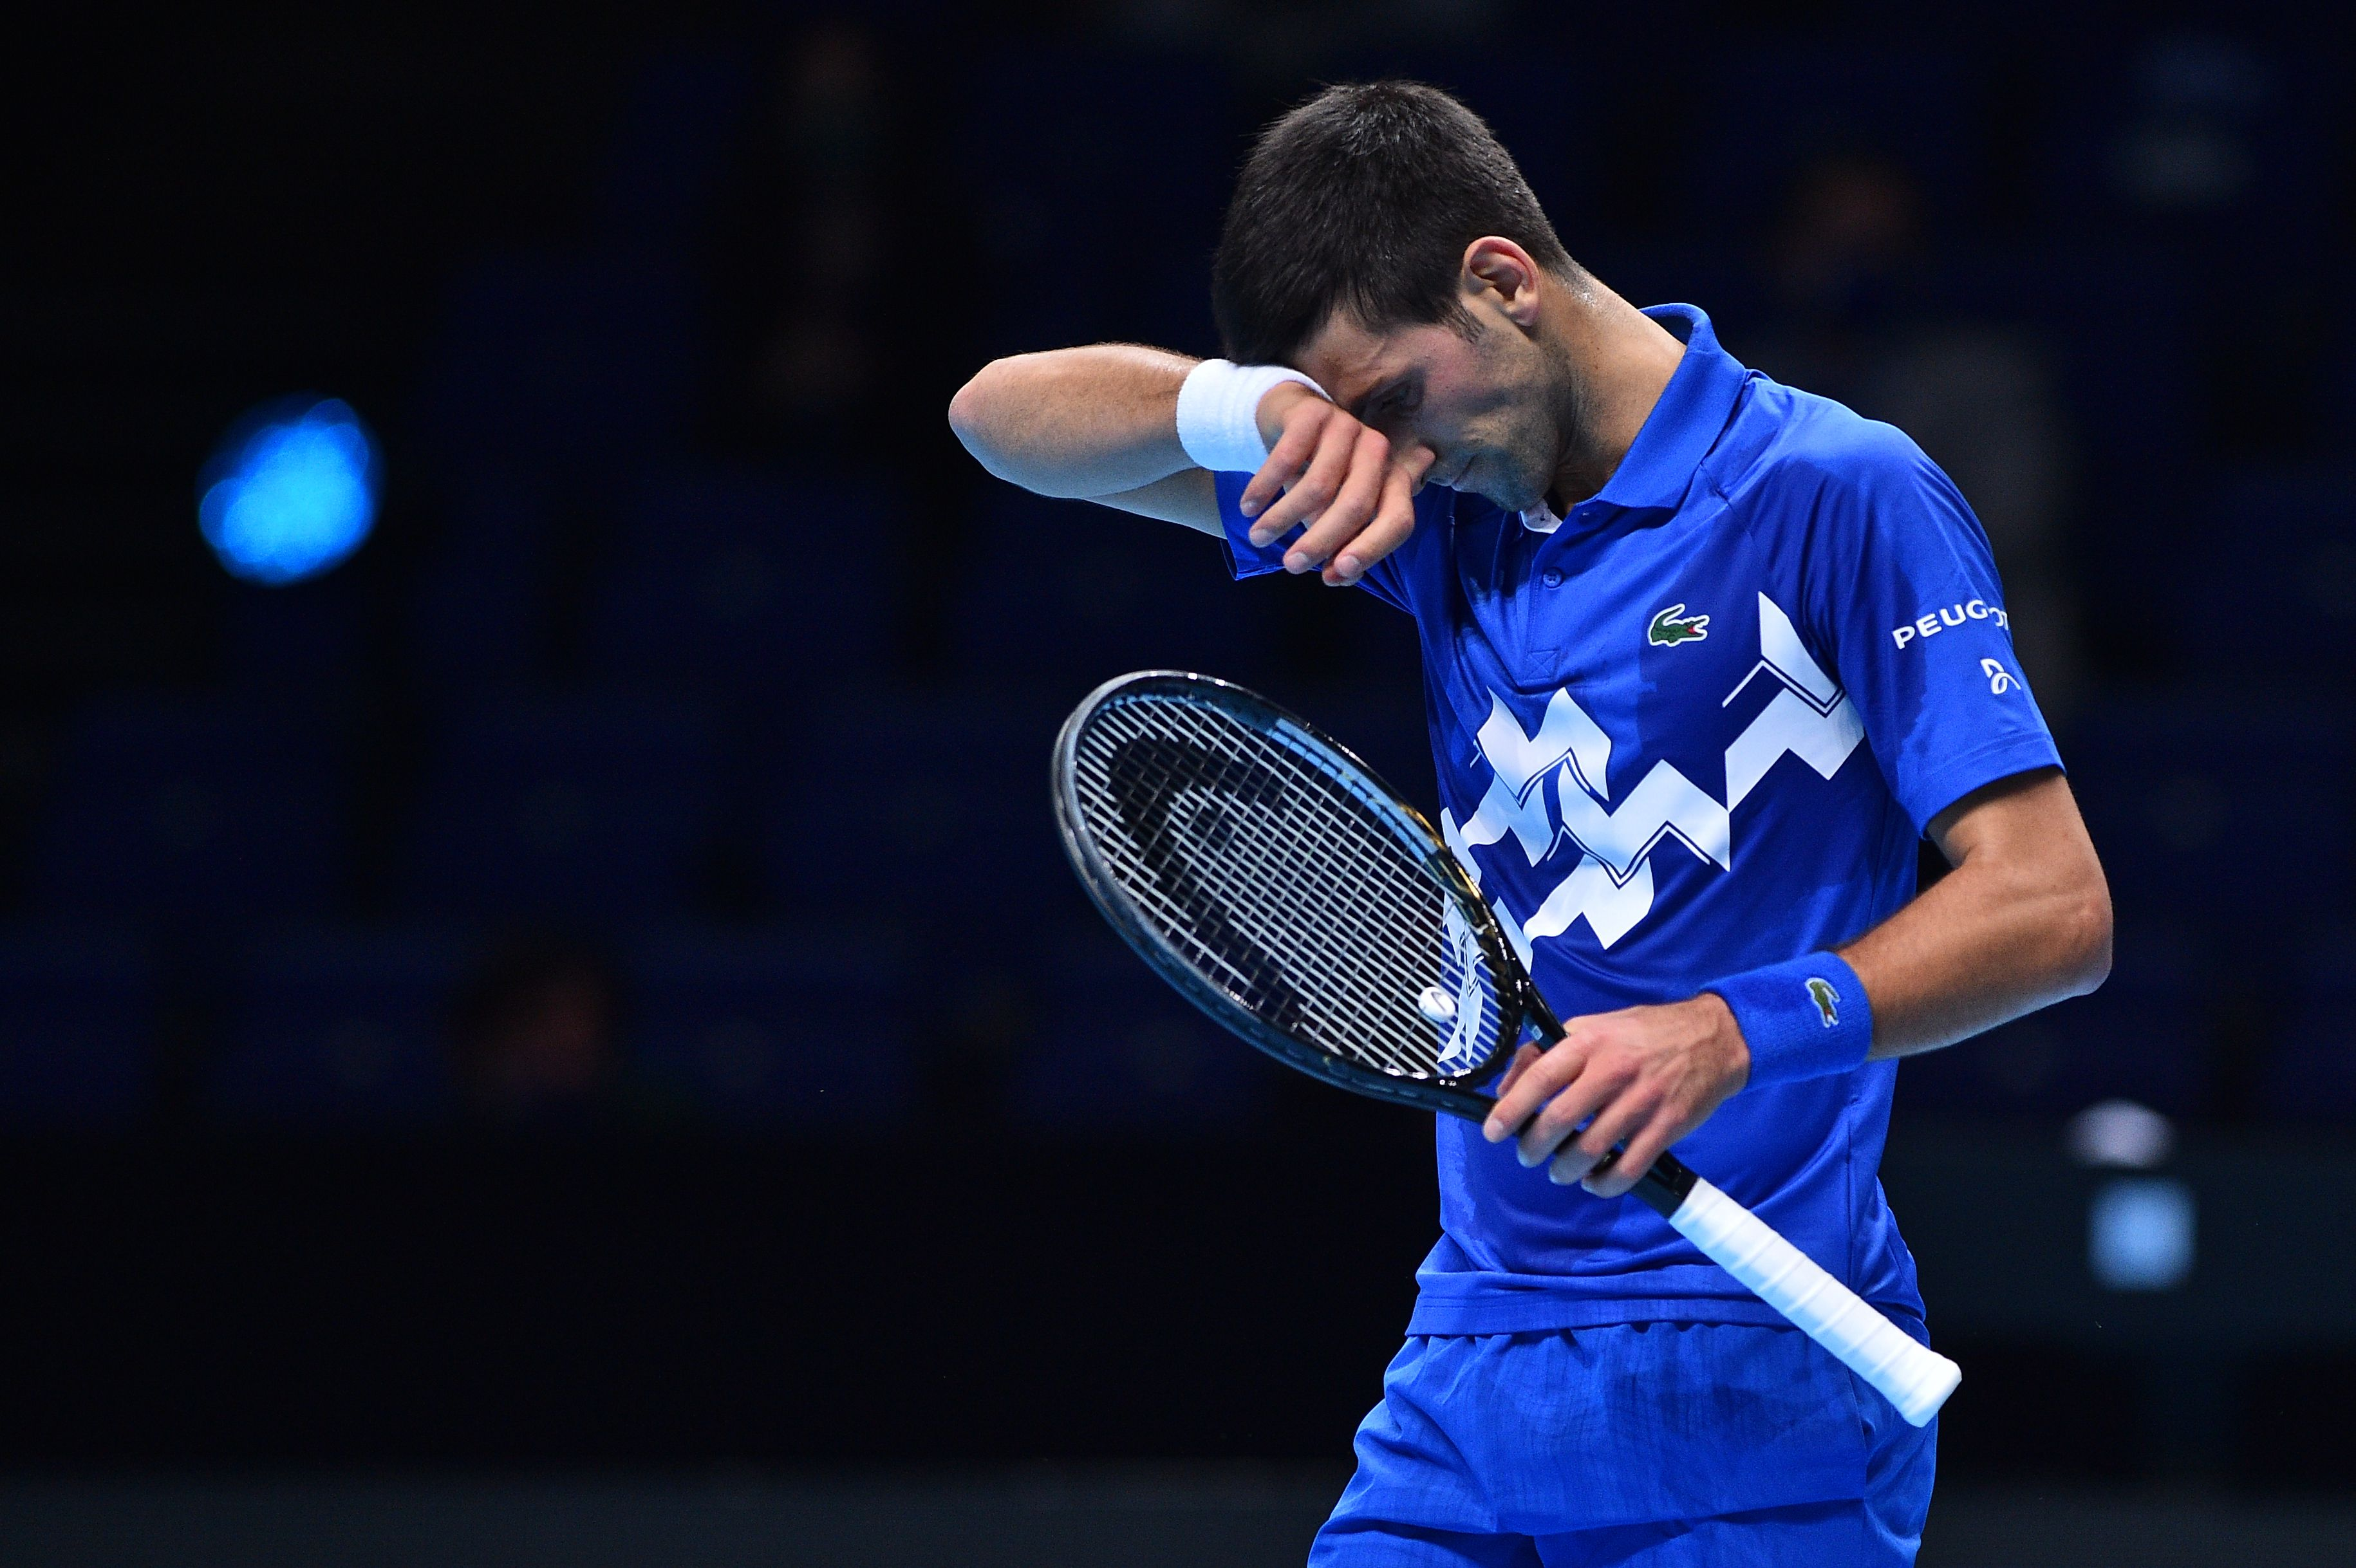 World No. 1 Novak Djokovic is stunned by Daniil Medvedev at the ATP Finals